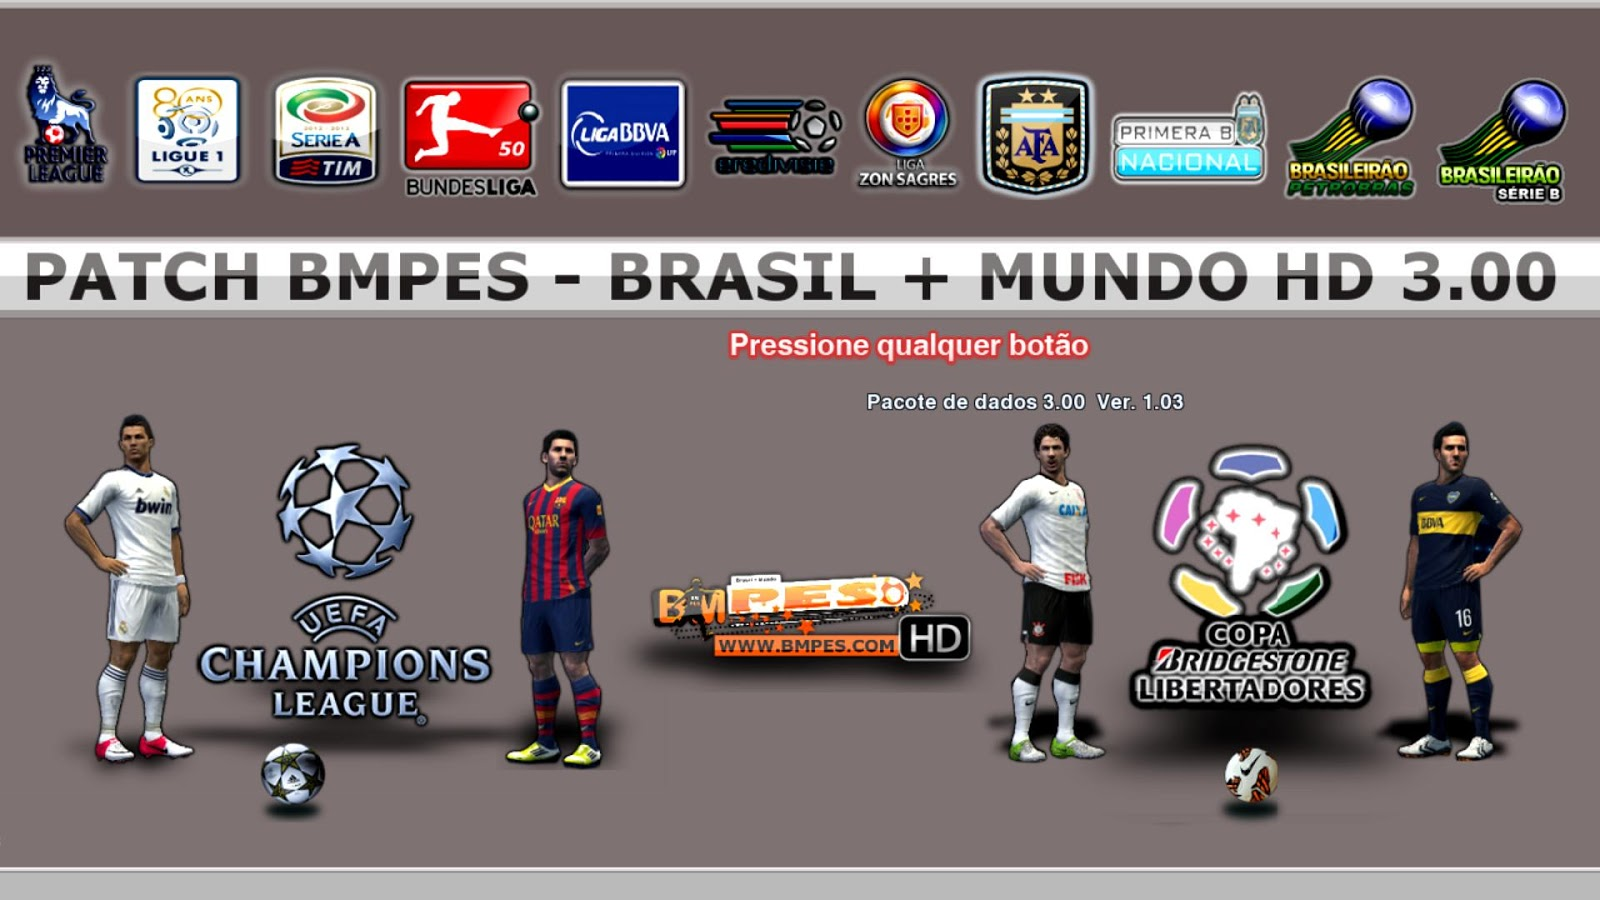 Download PES 2015 Patch, PES 2014 Patches Update, PES 2013 Patch, PES Edit,